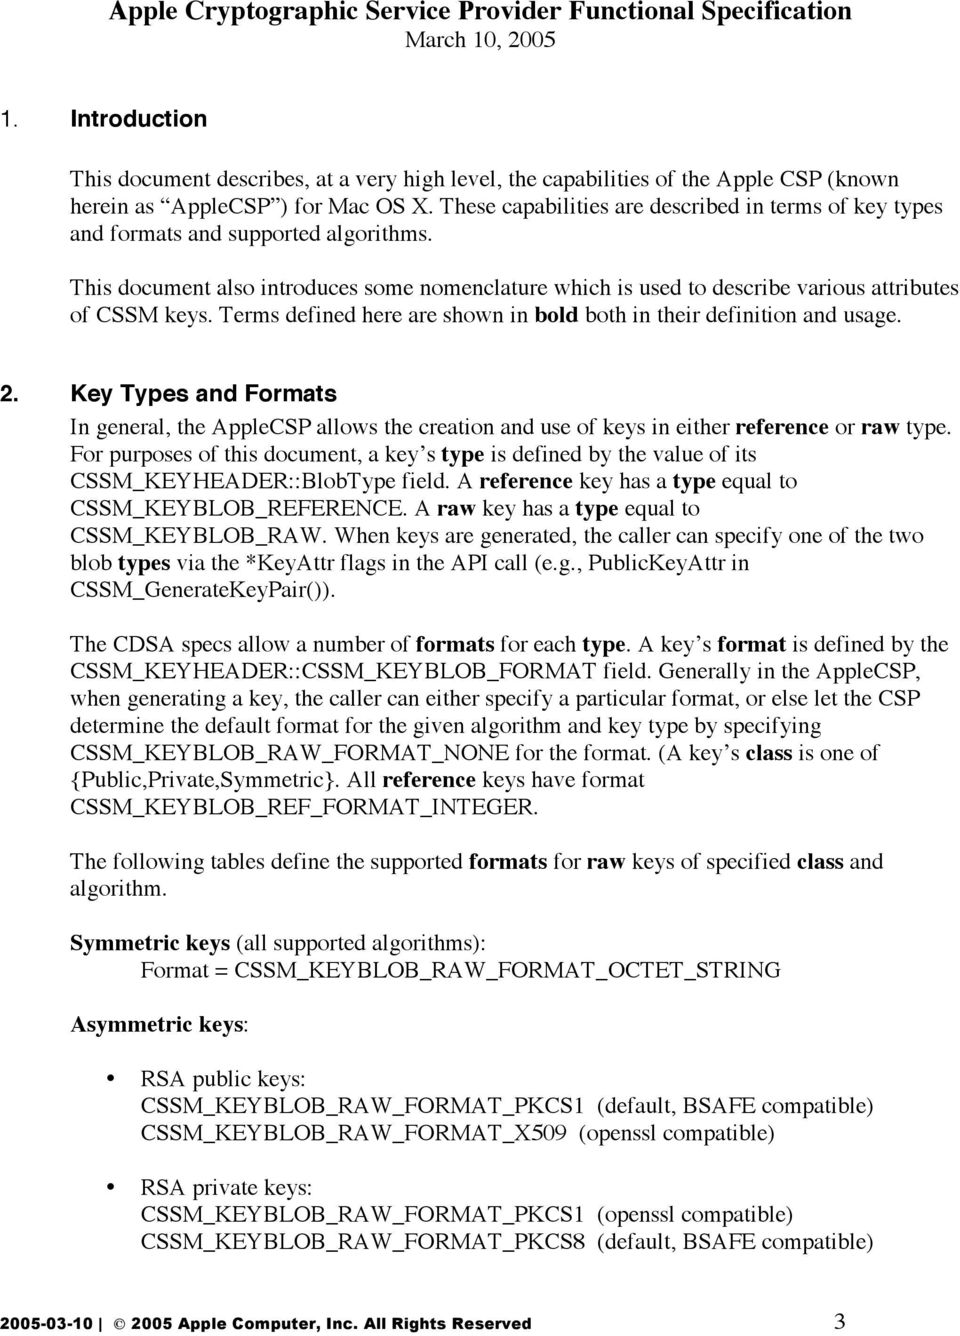 These capabilities are described in terms of key types and formats and supported algorithms. This document also introduces some nomenclature which is used to describe various attributes of CSSM keys.